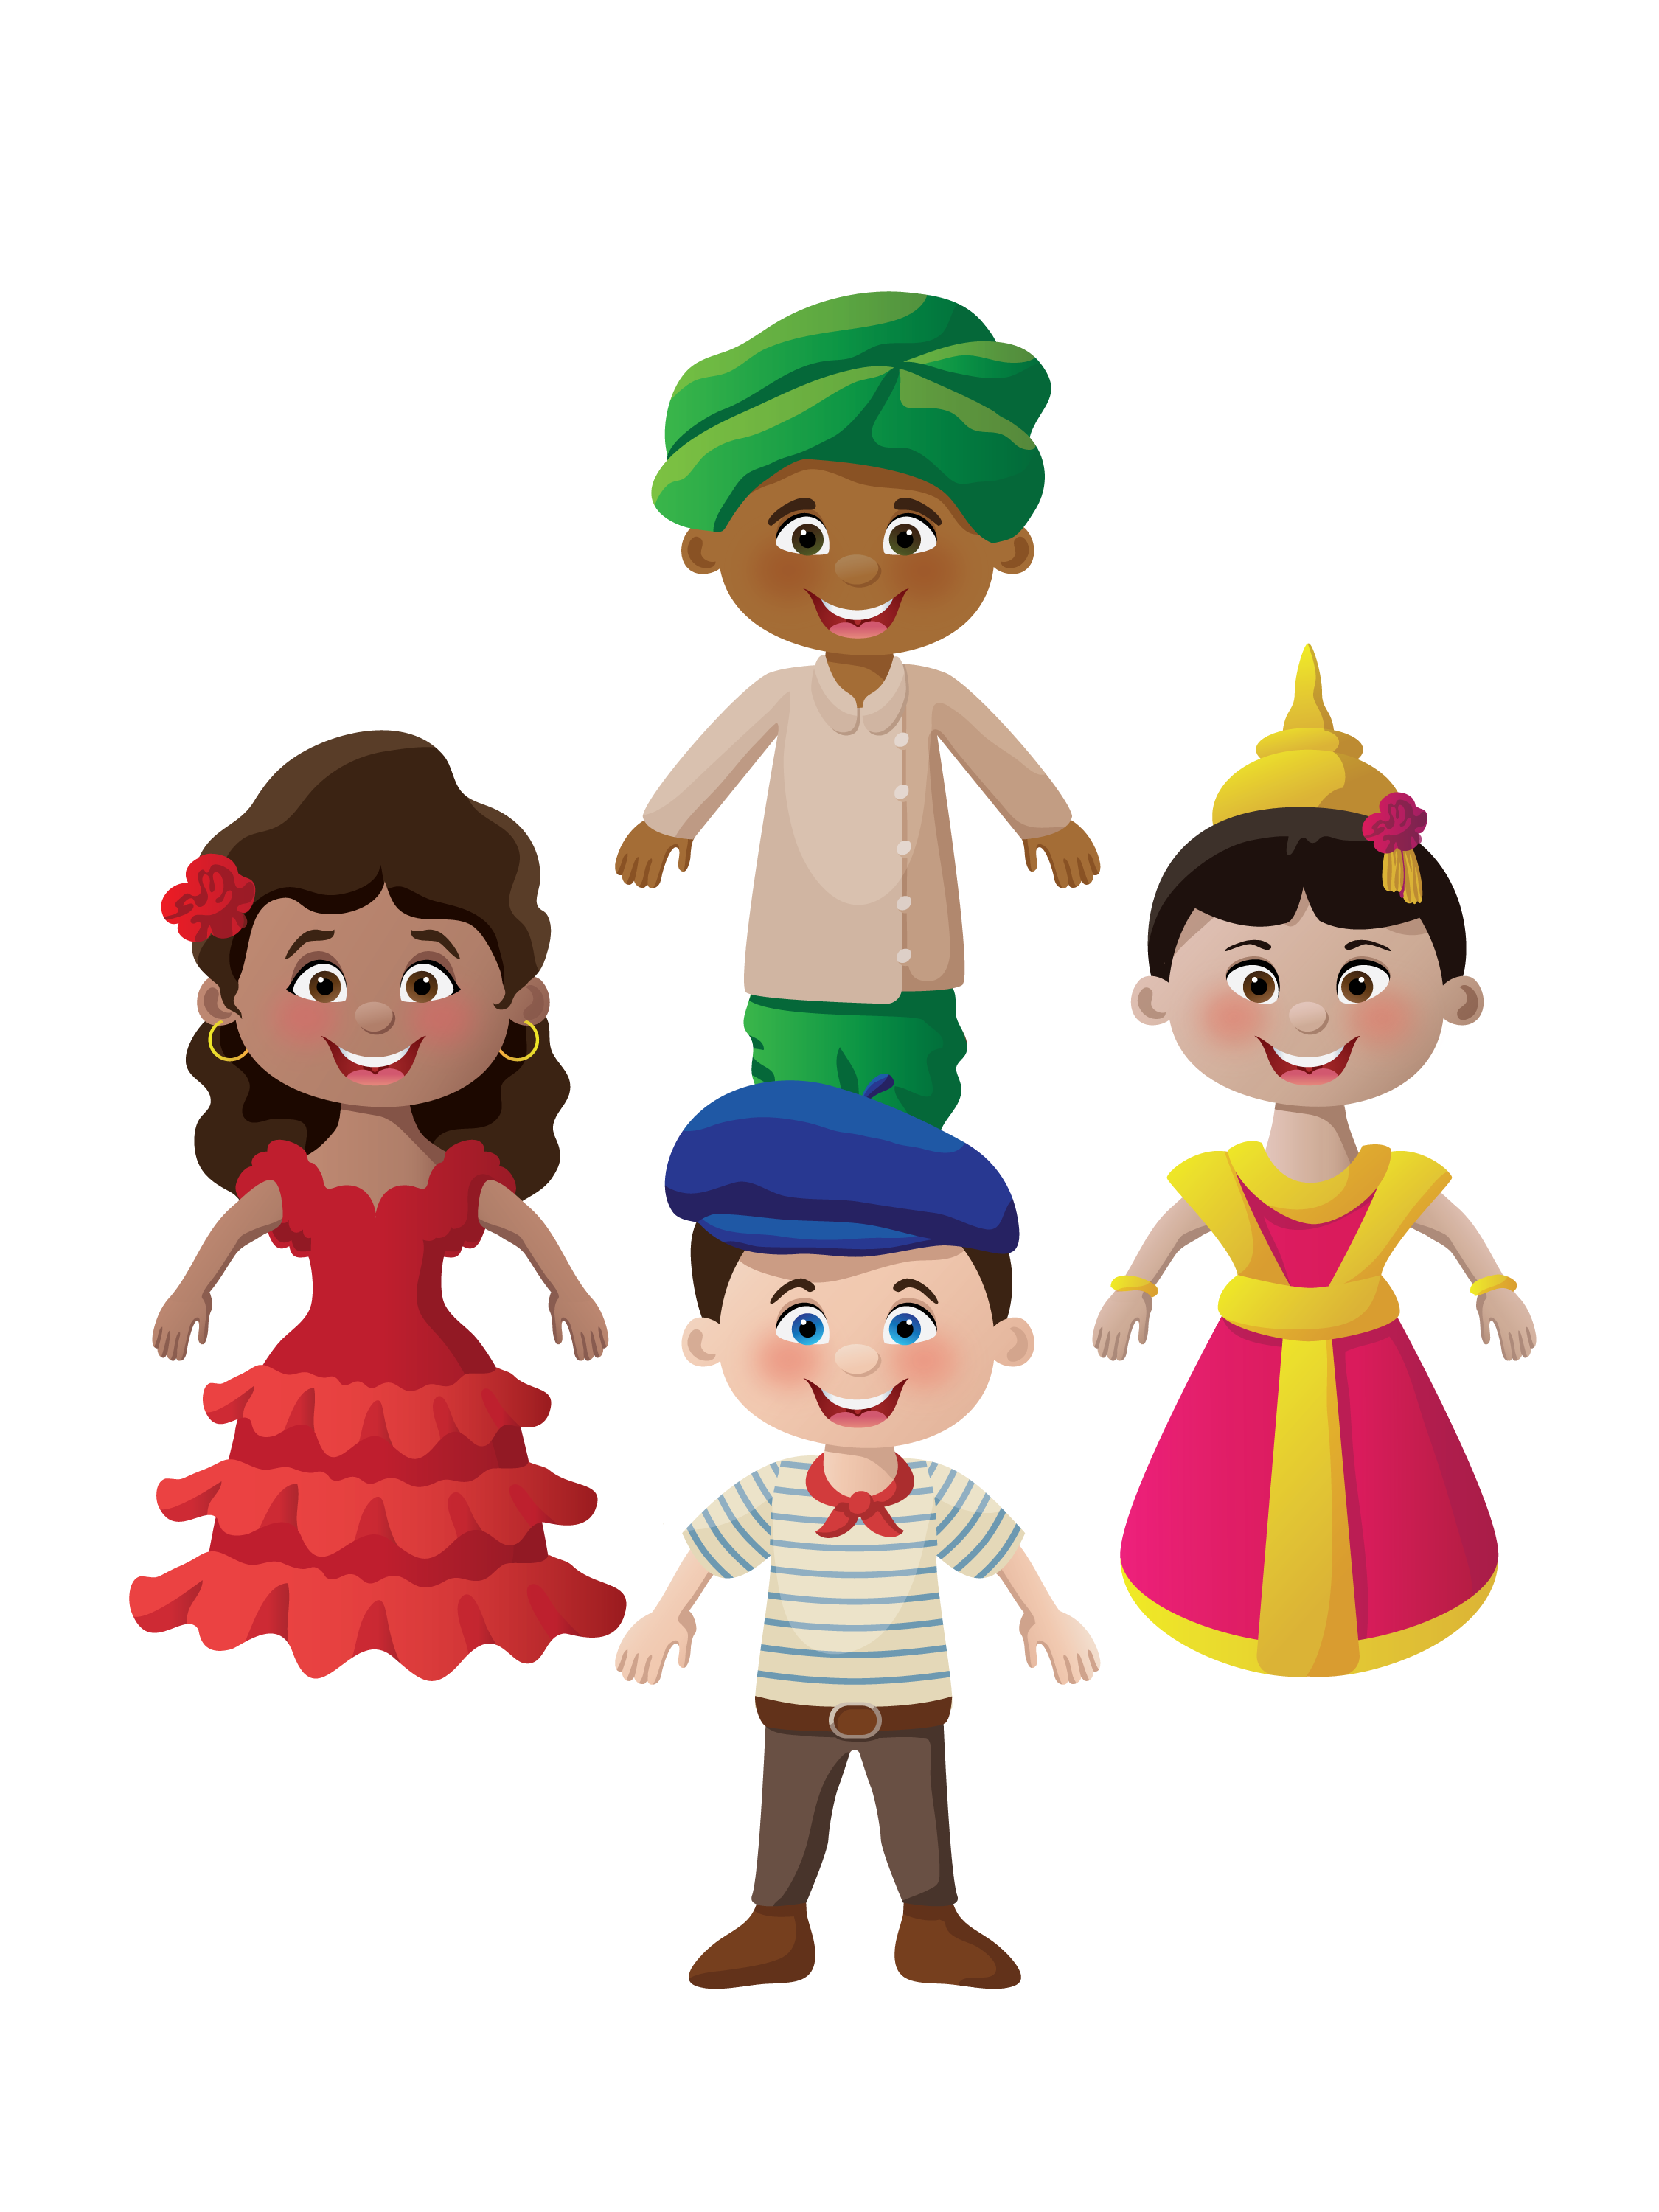 292700 Our World PreK-2 (World Kids) Vector Art-01.png